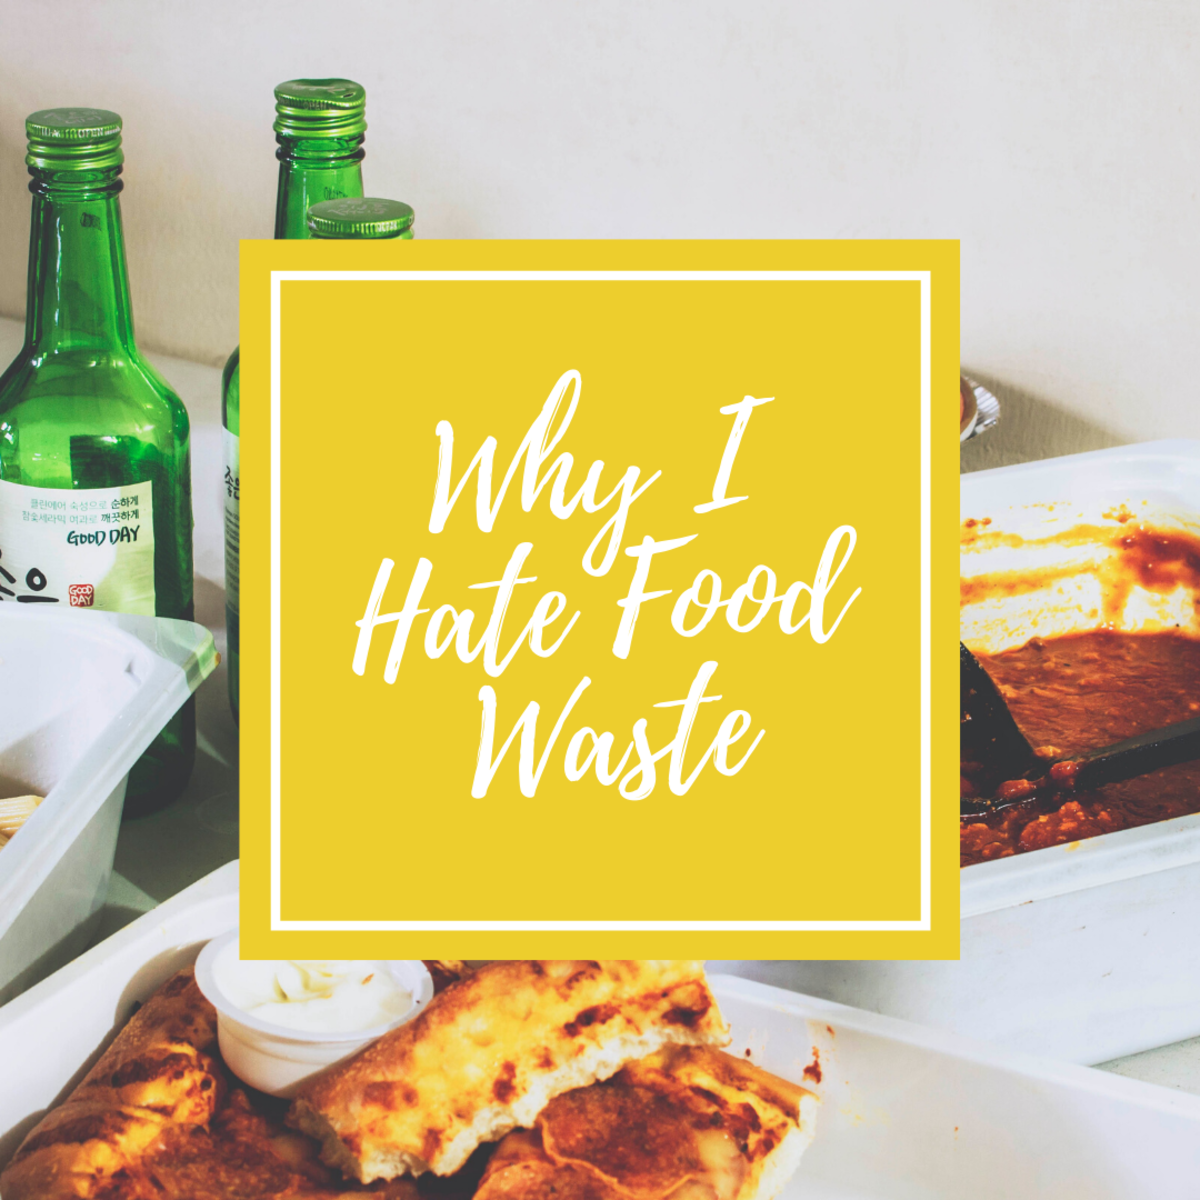 Food waste is a major problems that we all need to get a handle on!